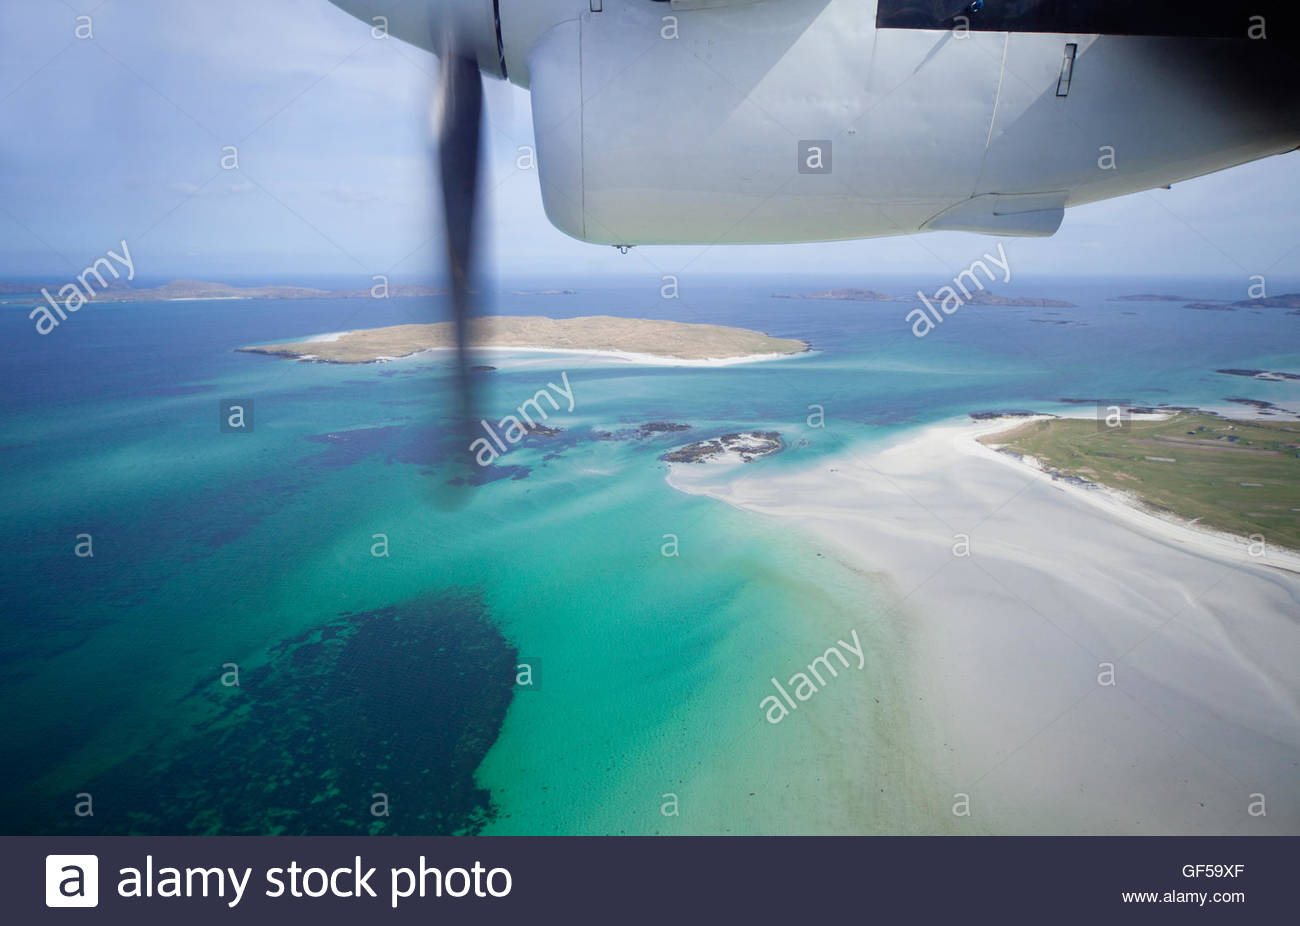 The view from the inter-island airplane as it flies over the Isle of Barra with the Isle of Fuday visible beyond, - Stock Image